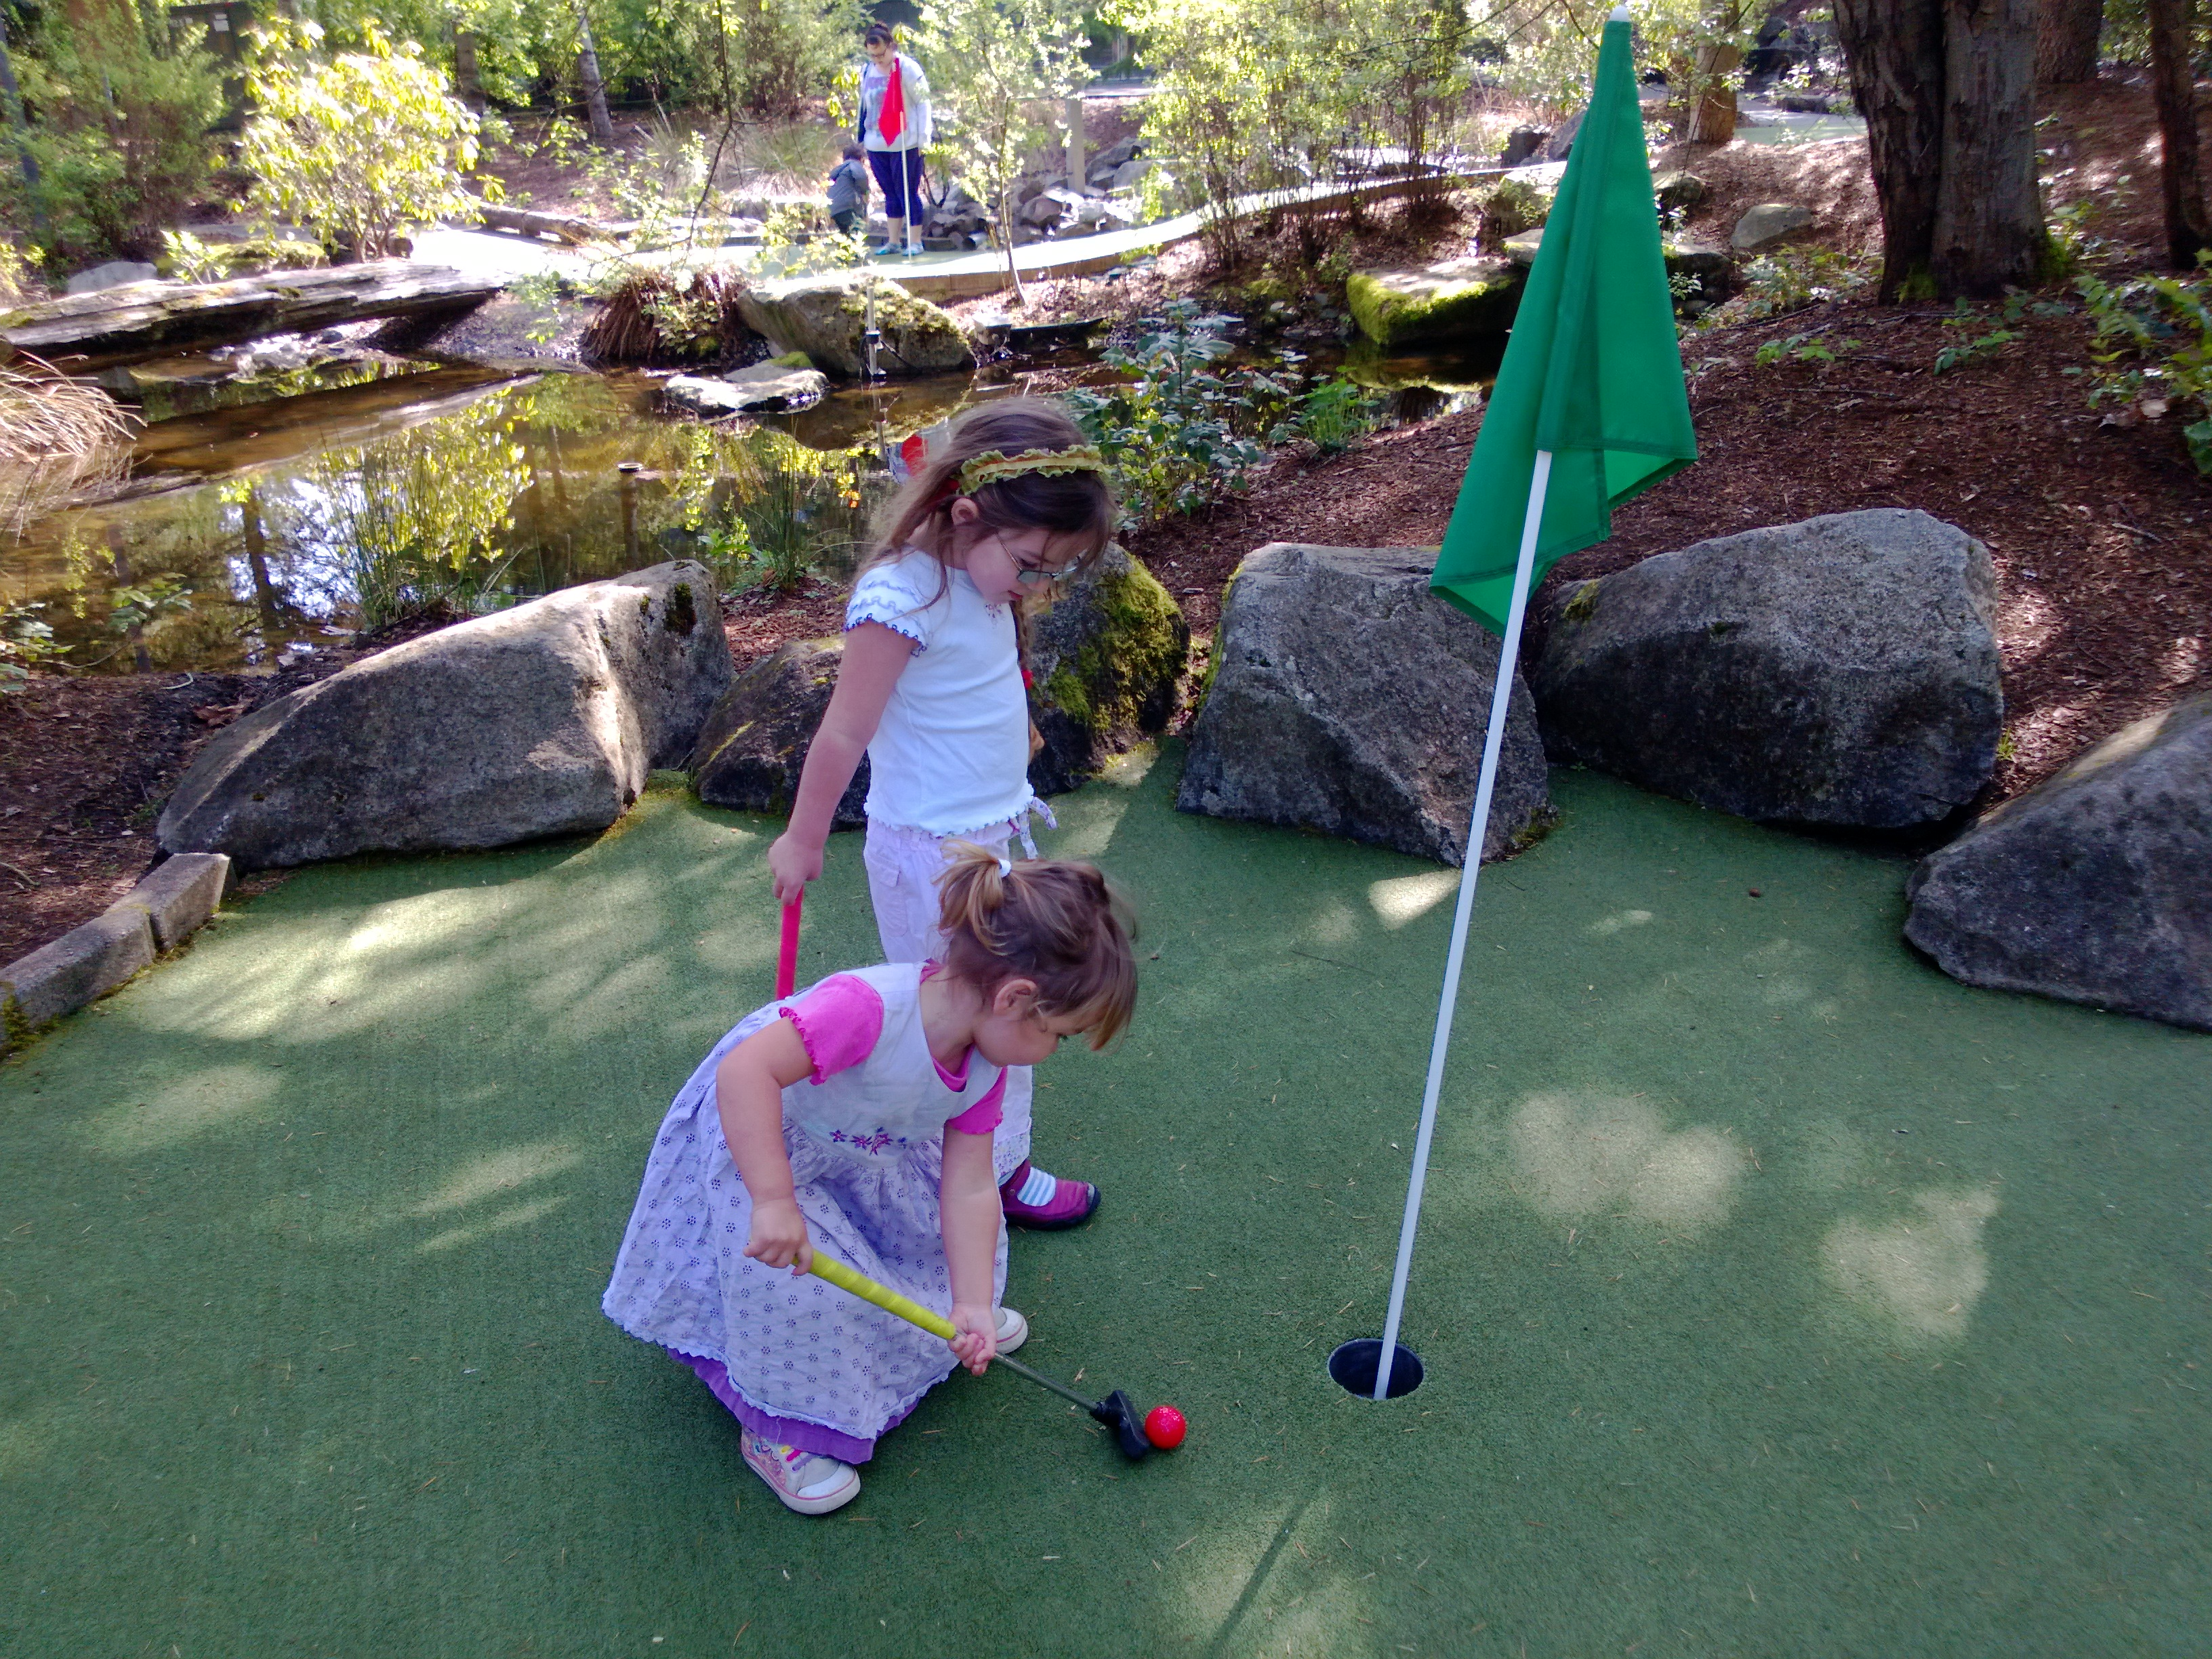 The Top 10 Life Lessons Your Child Can Learn from Playing Golf